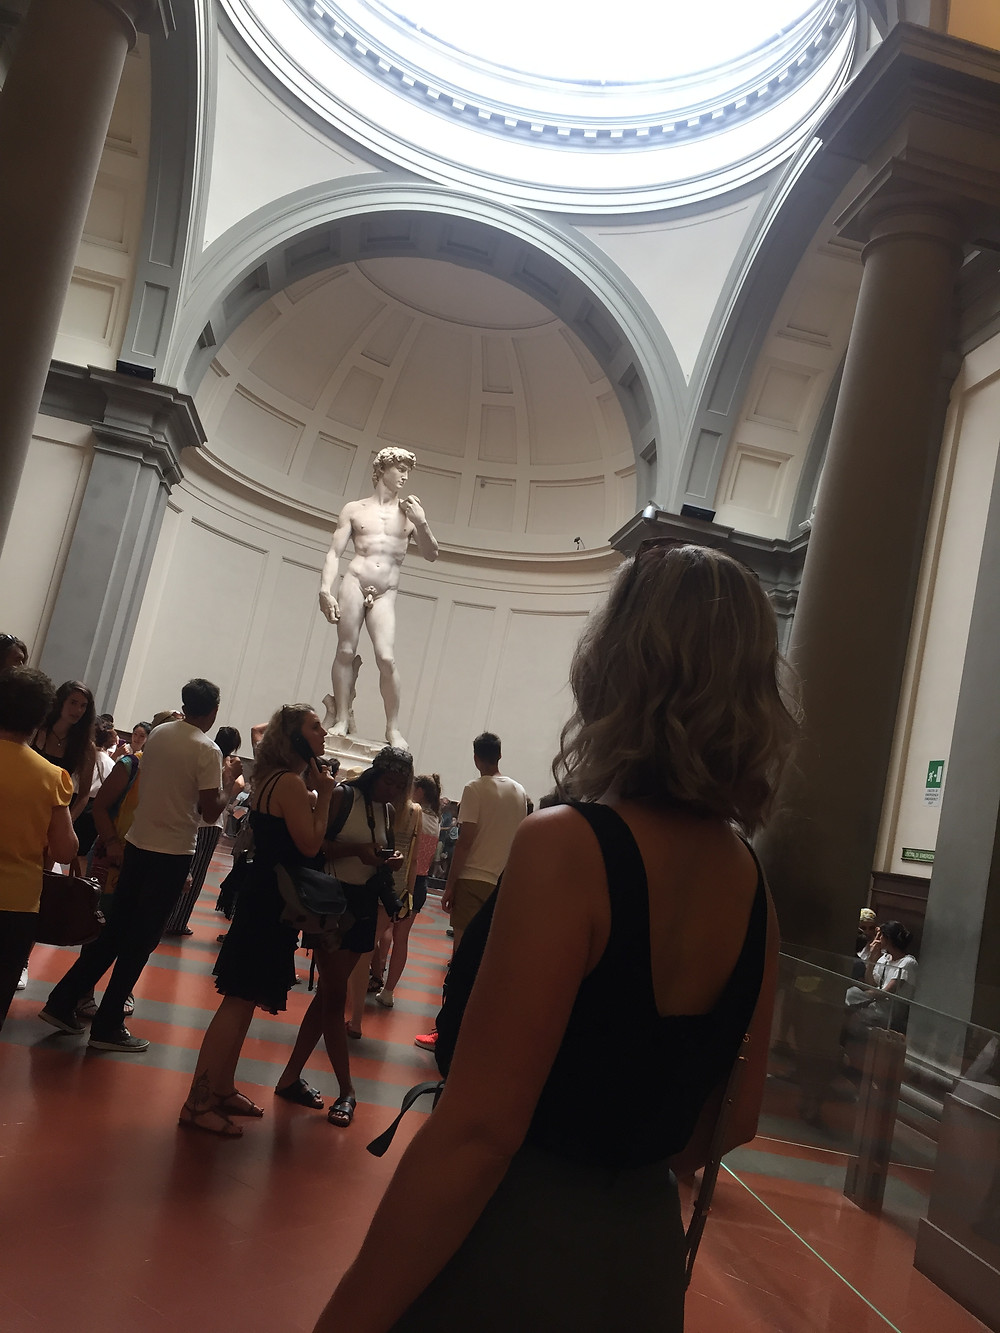 Woman pictured from the back looks down the hallway of the Accademia Gallery to the statue of David bathed in light